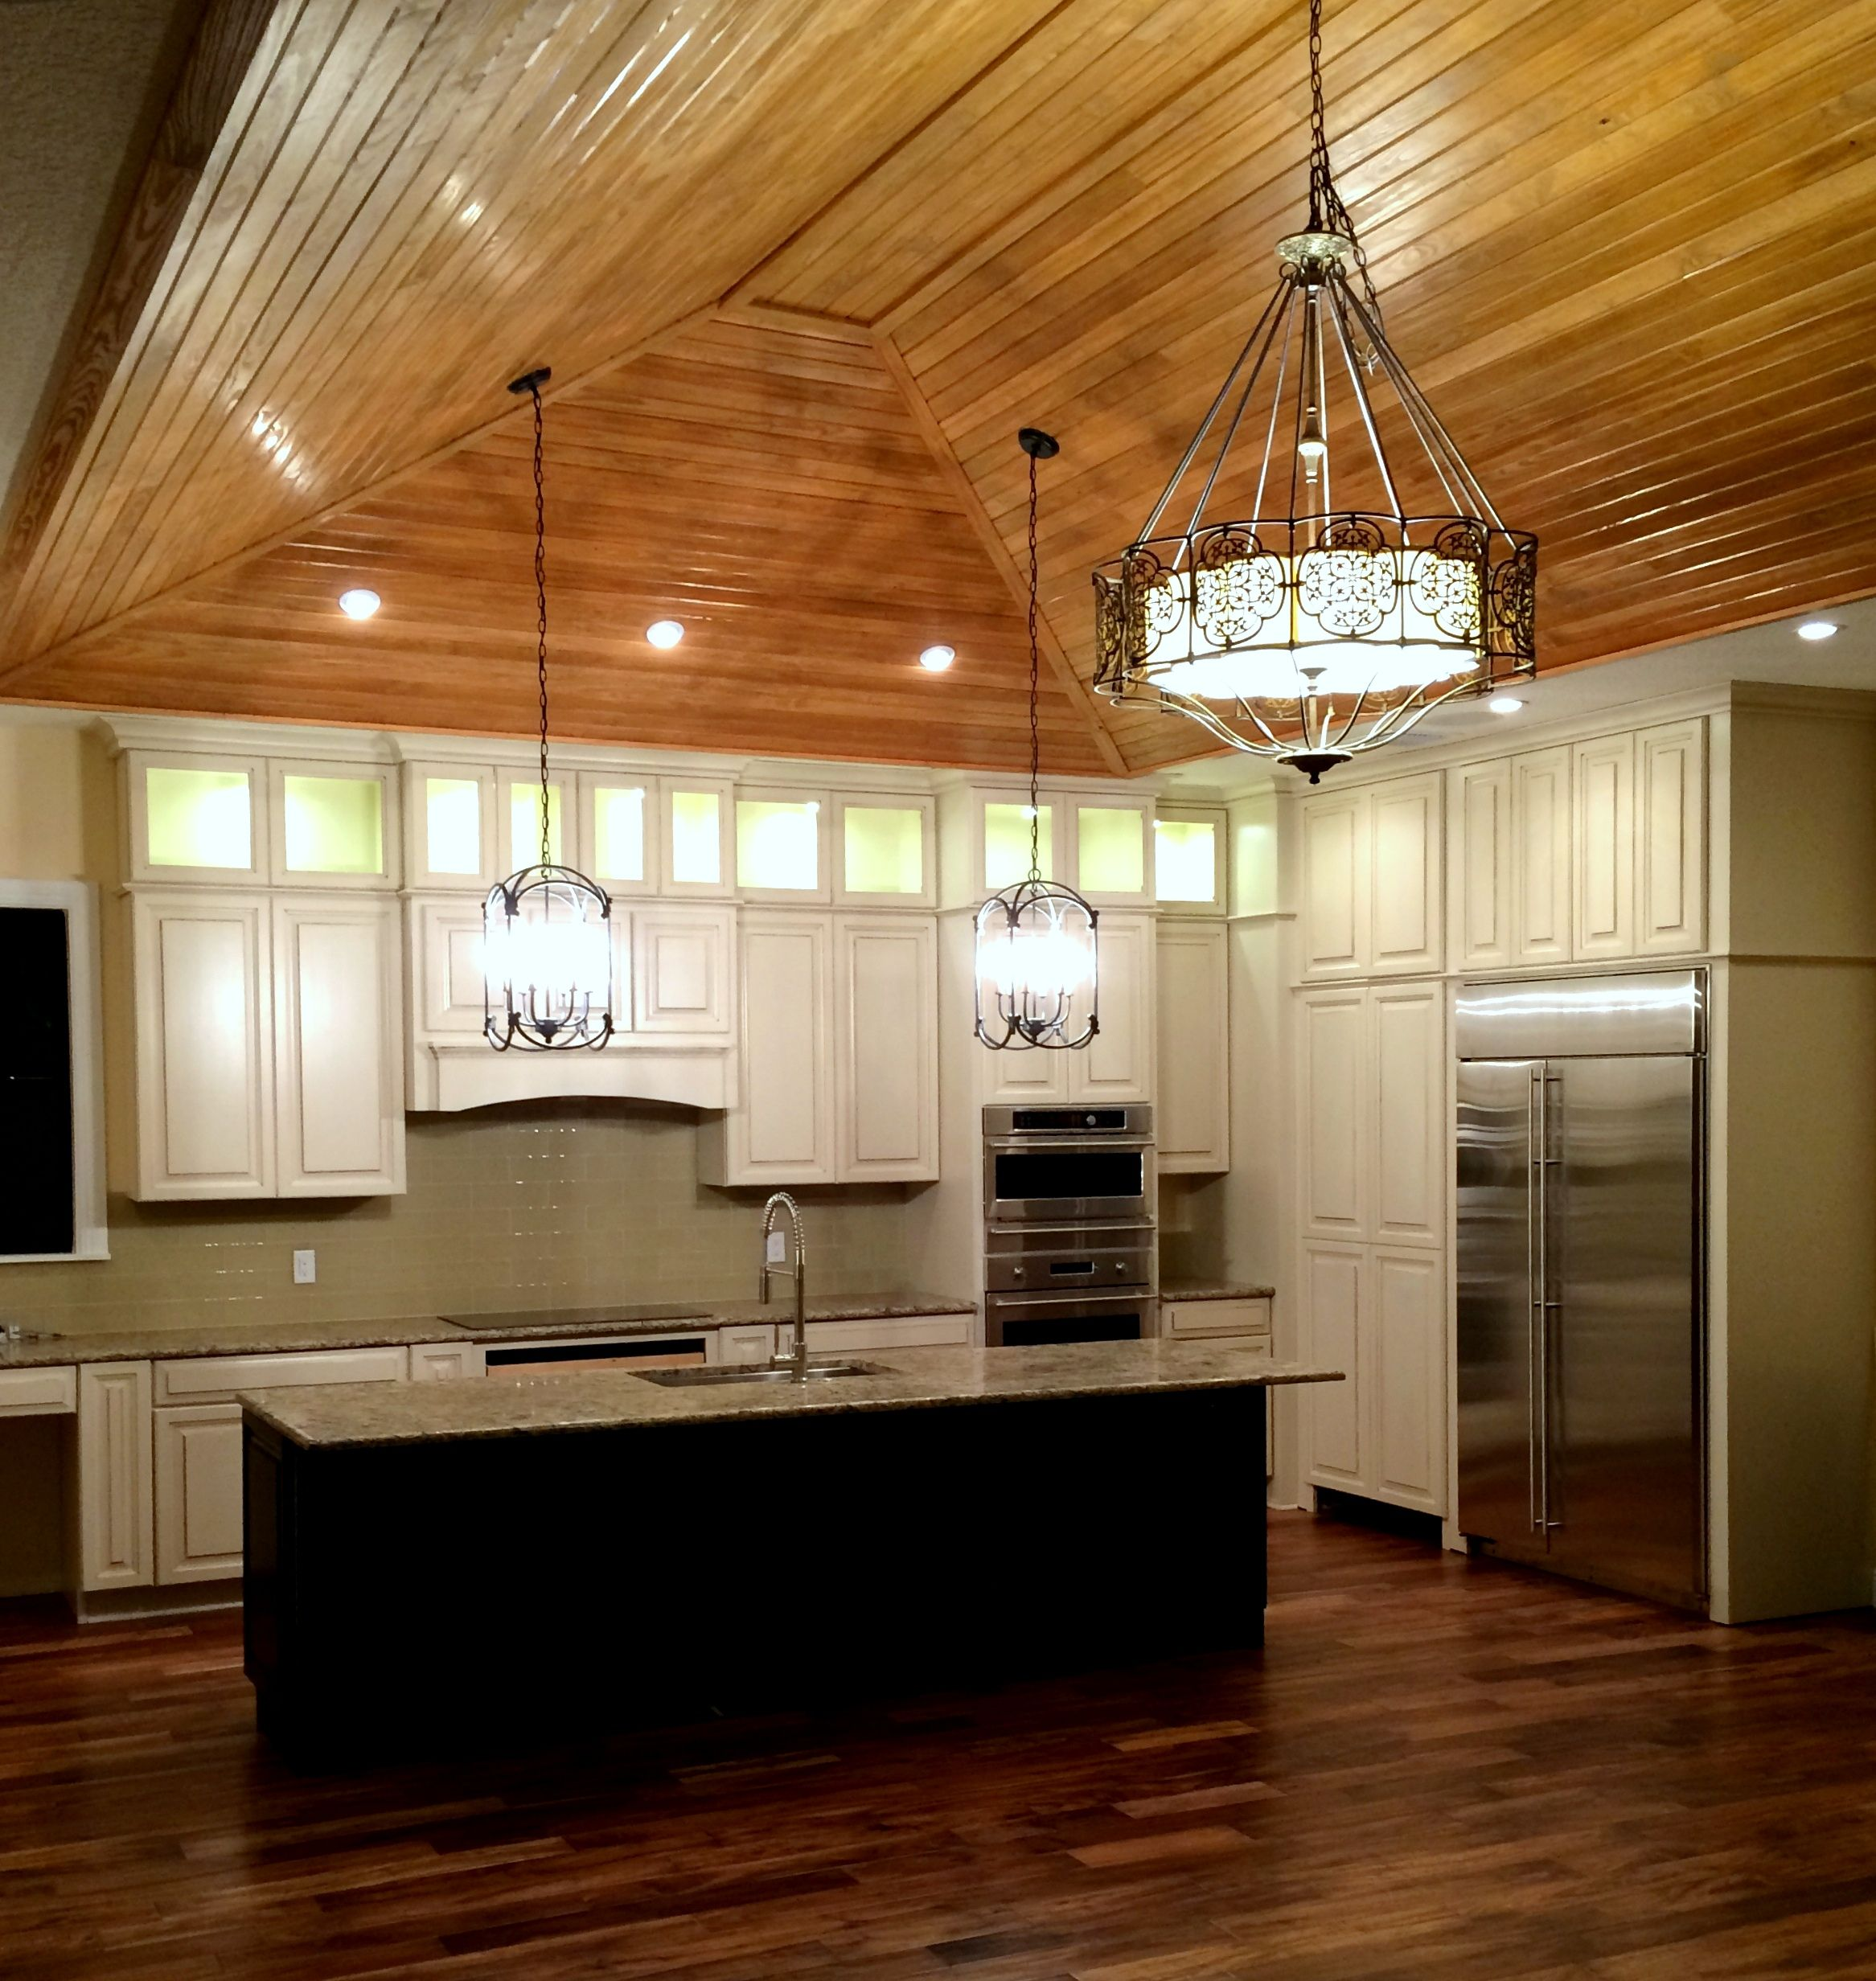 White Cabinets From Wellborn Forest By Mario S Cabinets In